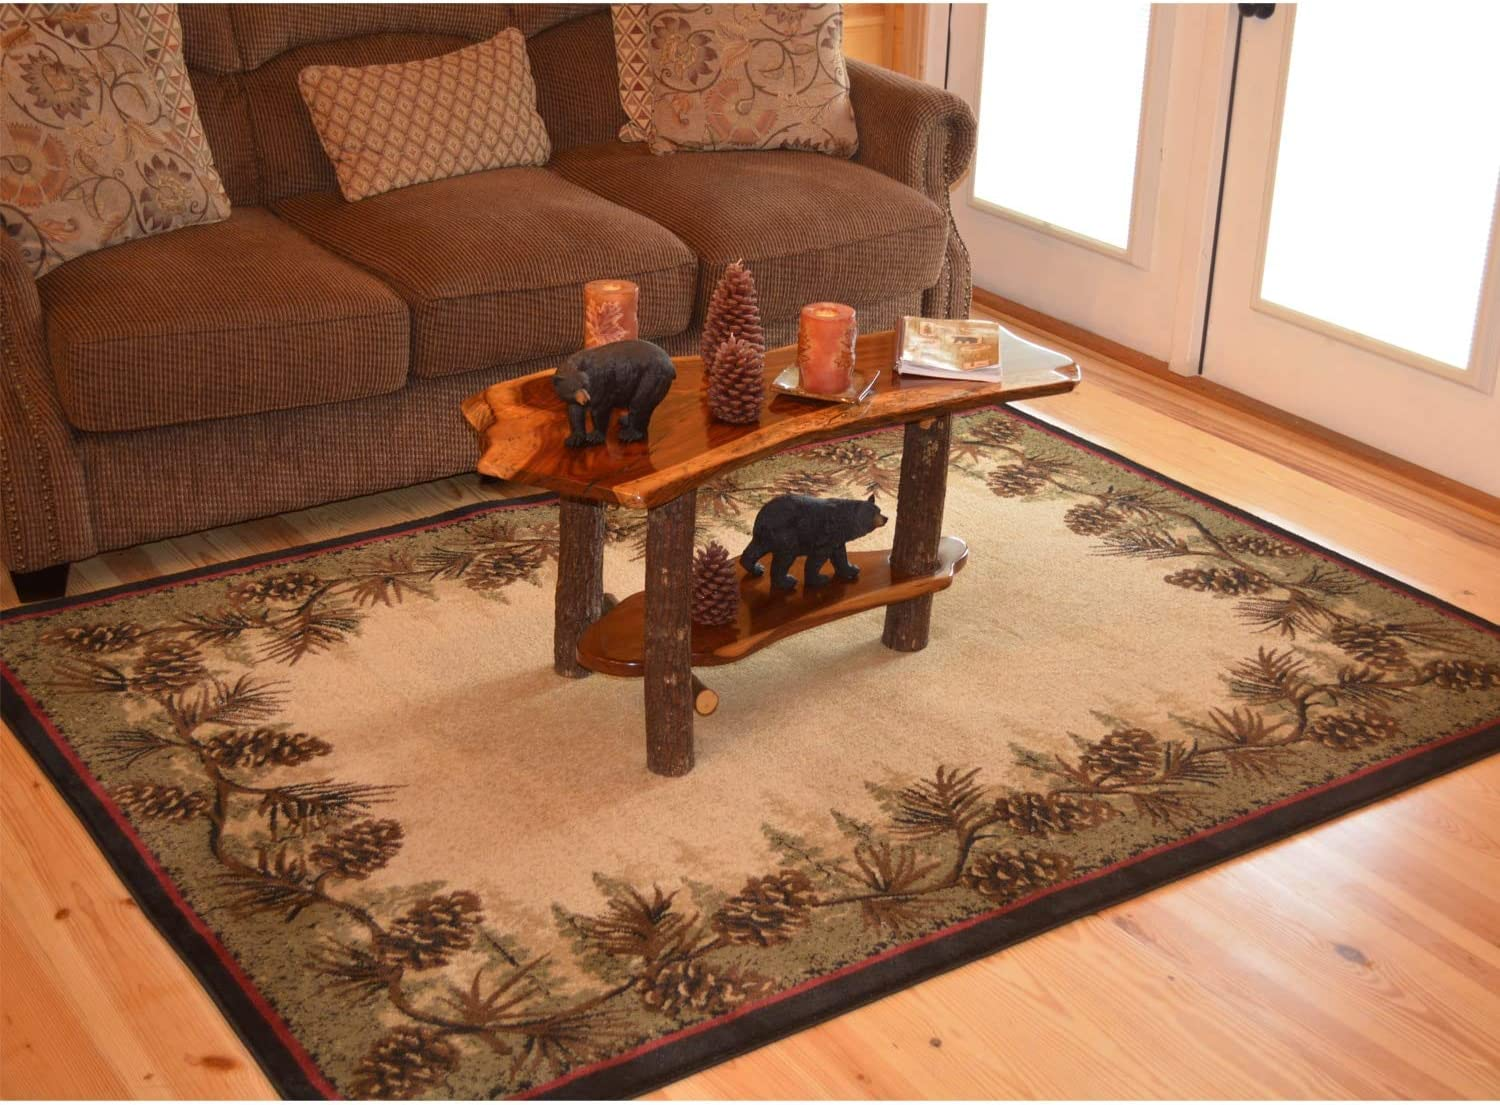 """Rustic Lodge Pine Cone Border Ivory Area Rug - Multi 2'3"""" X 3'3"""" Nature Cabin Rectangle Polypropylene Synthetic Contains Latex Stain Resistant"""